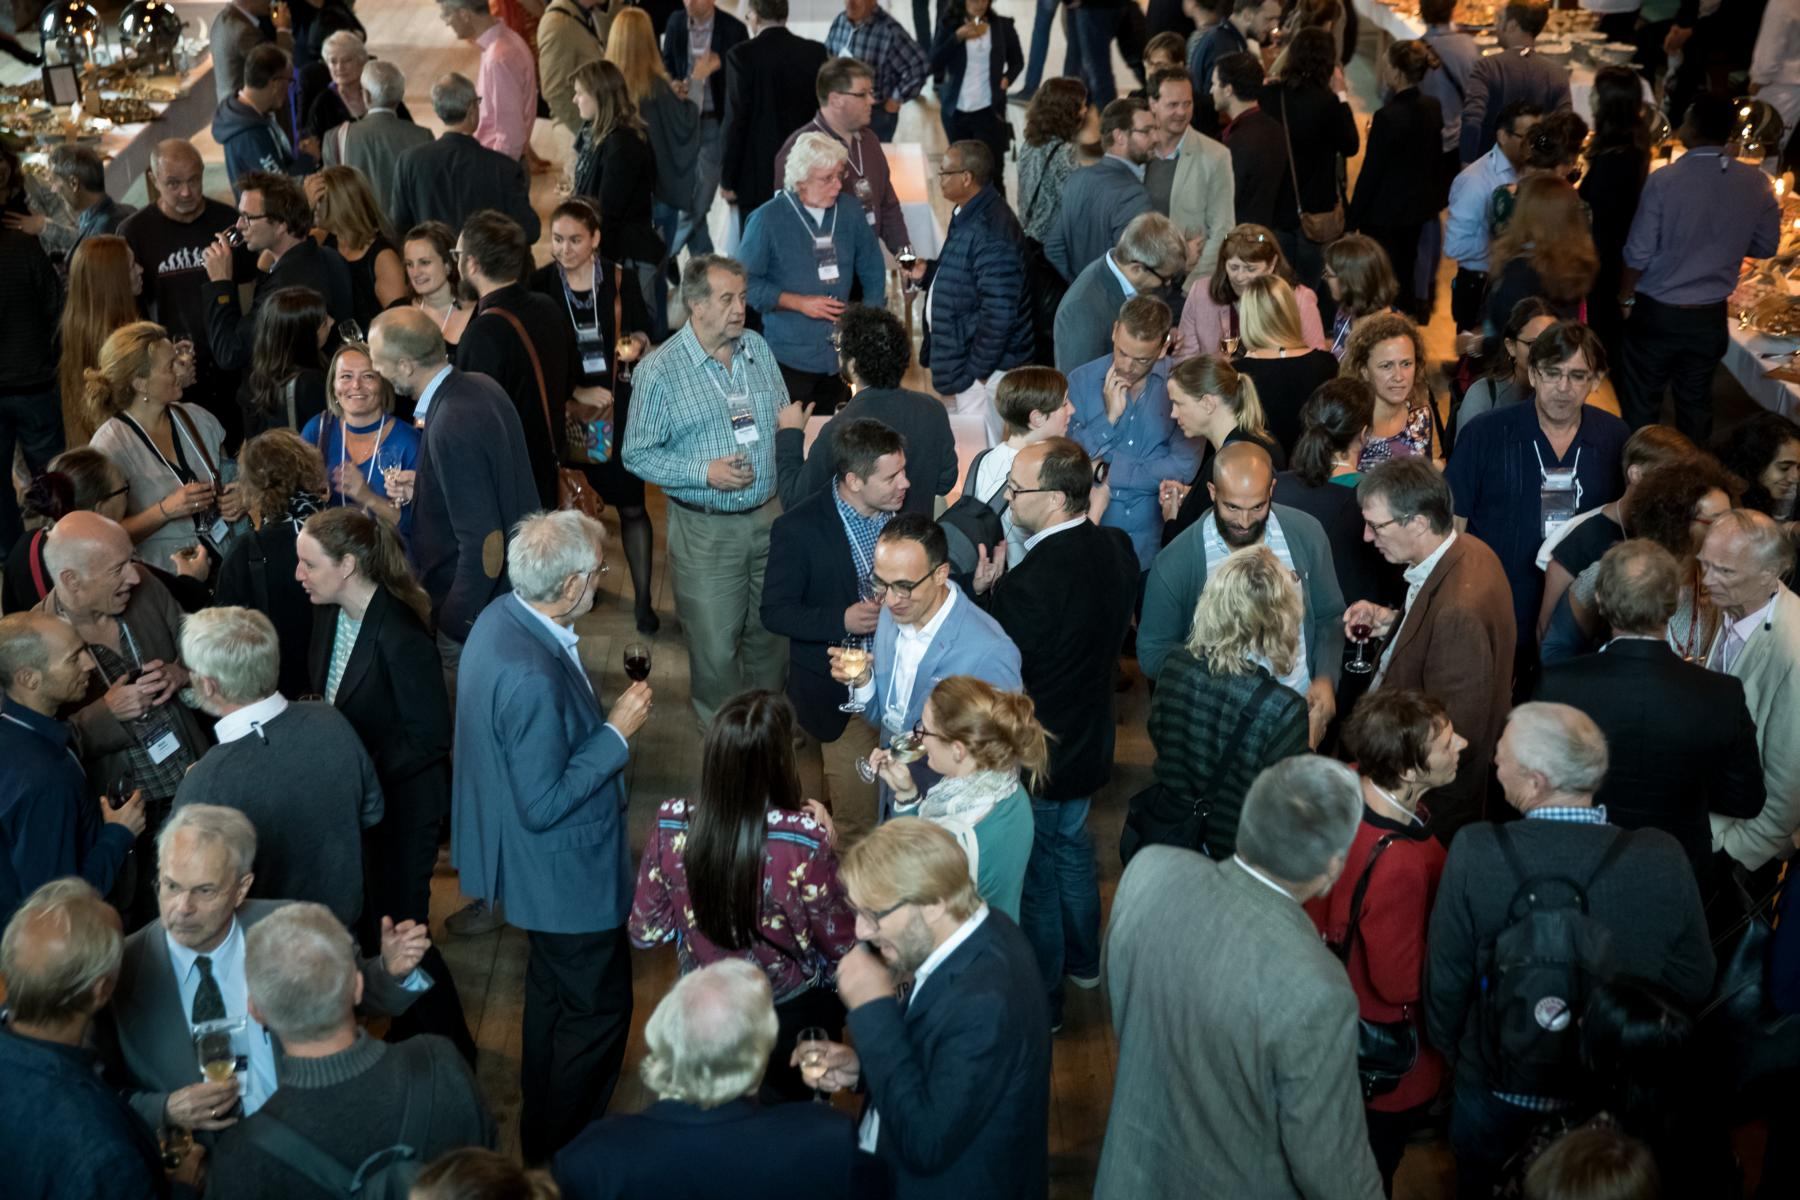 Visit our photo gallery with great shots of #eadinordic2017 All credits to Eivind Senneset/@UiB https://t.co/ky6XOjEyCS https://t.co/LuAwGuFfGG